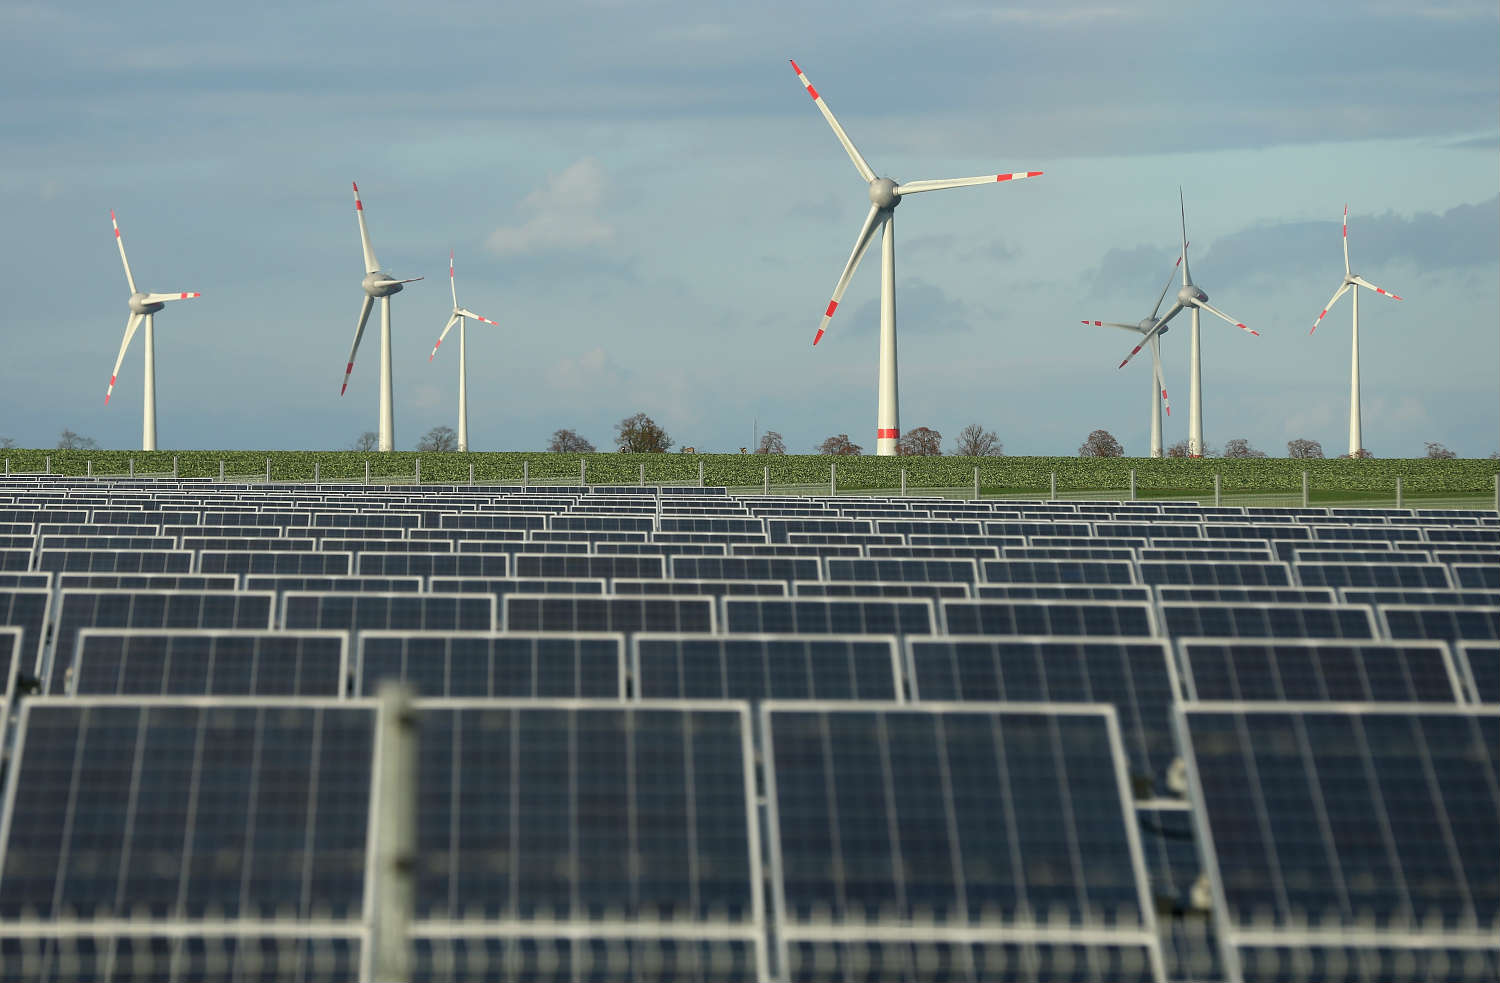 Investment in renewables like solar and wind is down, but their share of global power is up